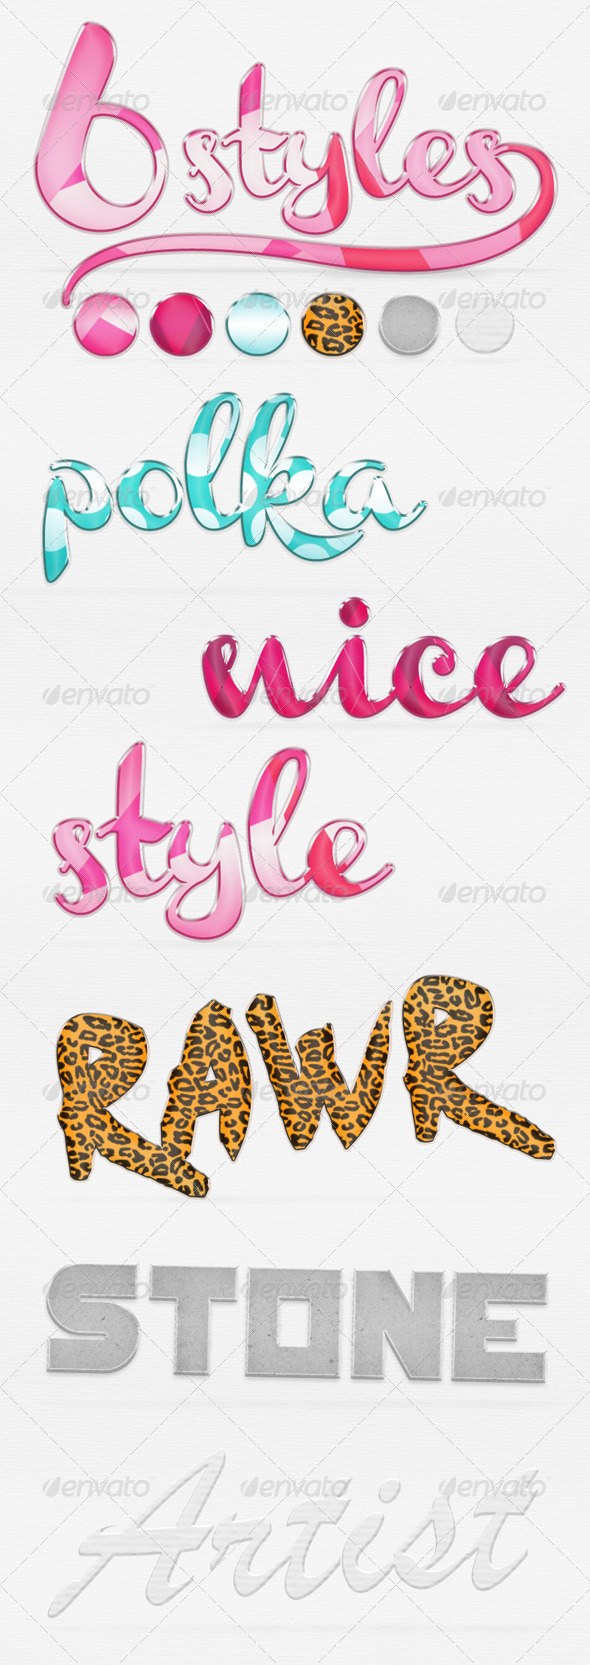 6 Fresh Photoshop Styles - Text Effects Styles